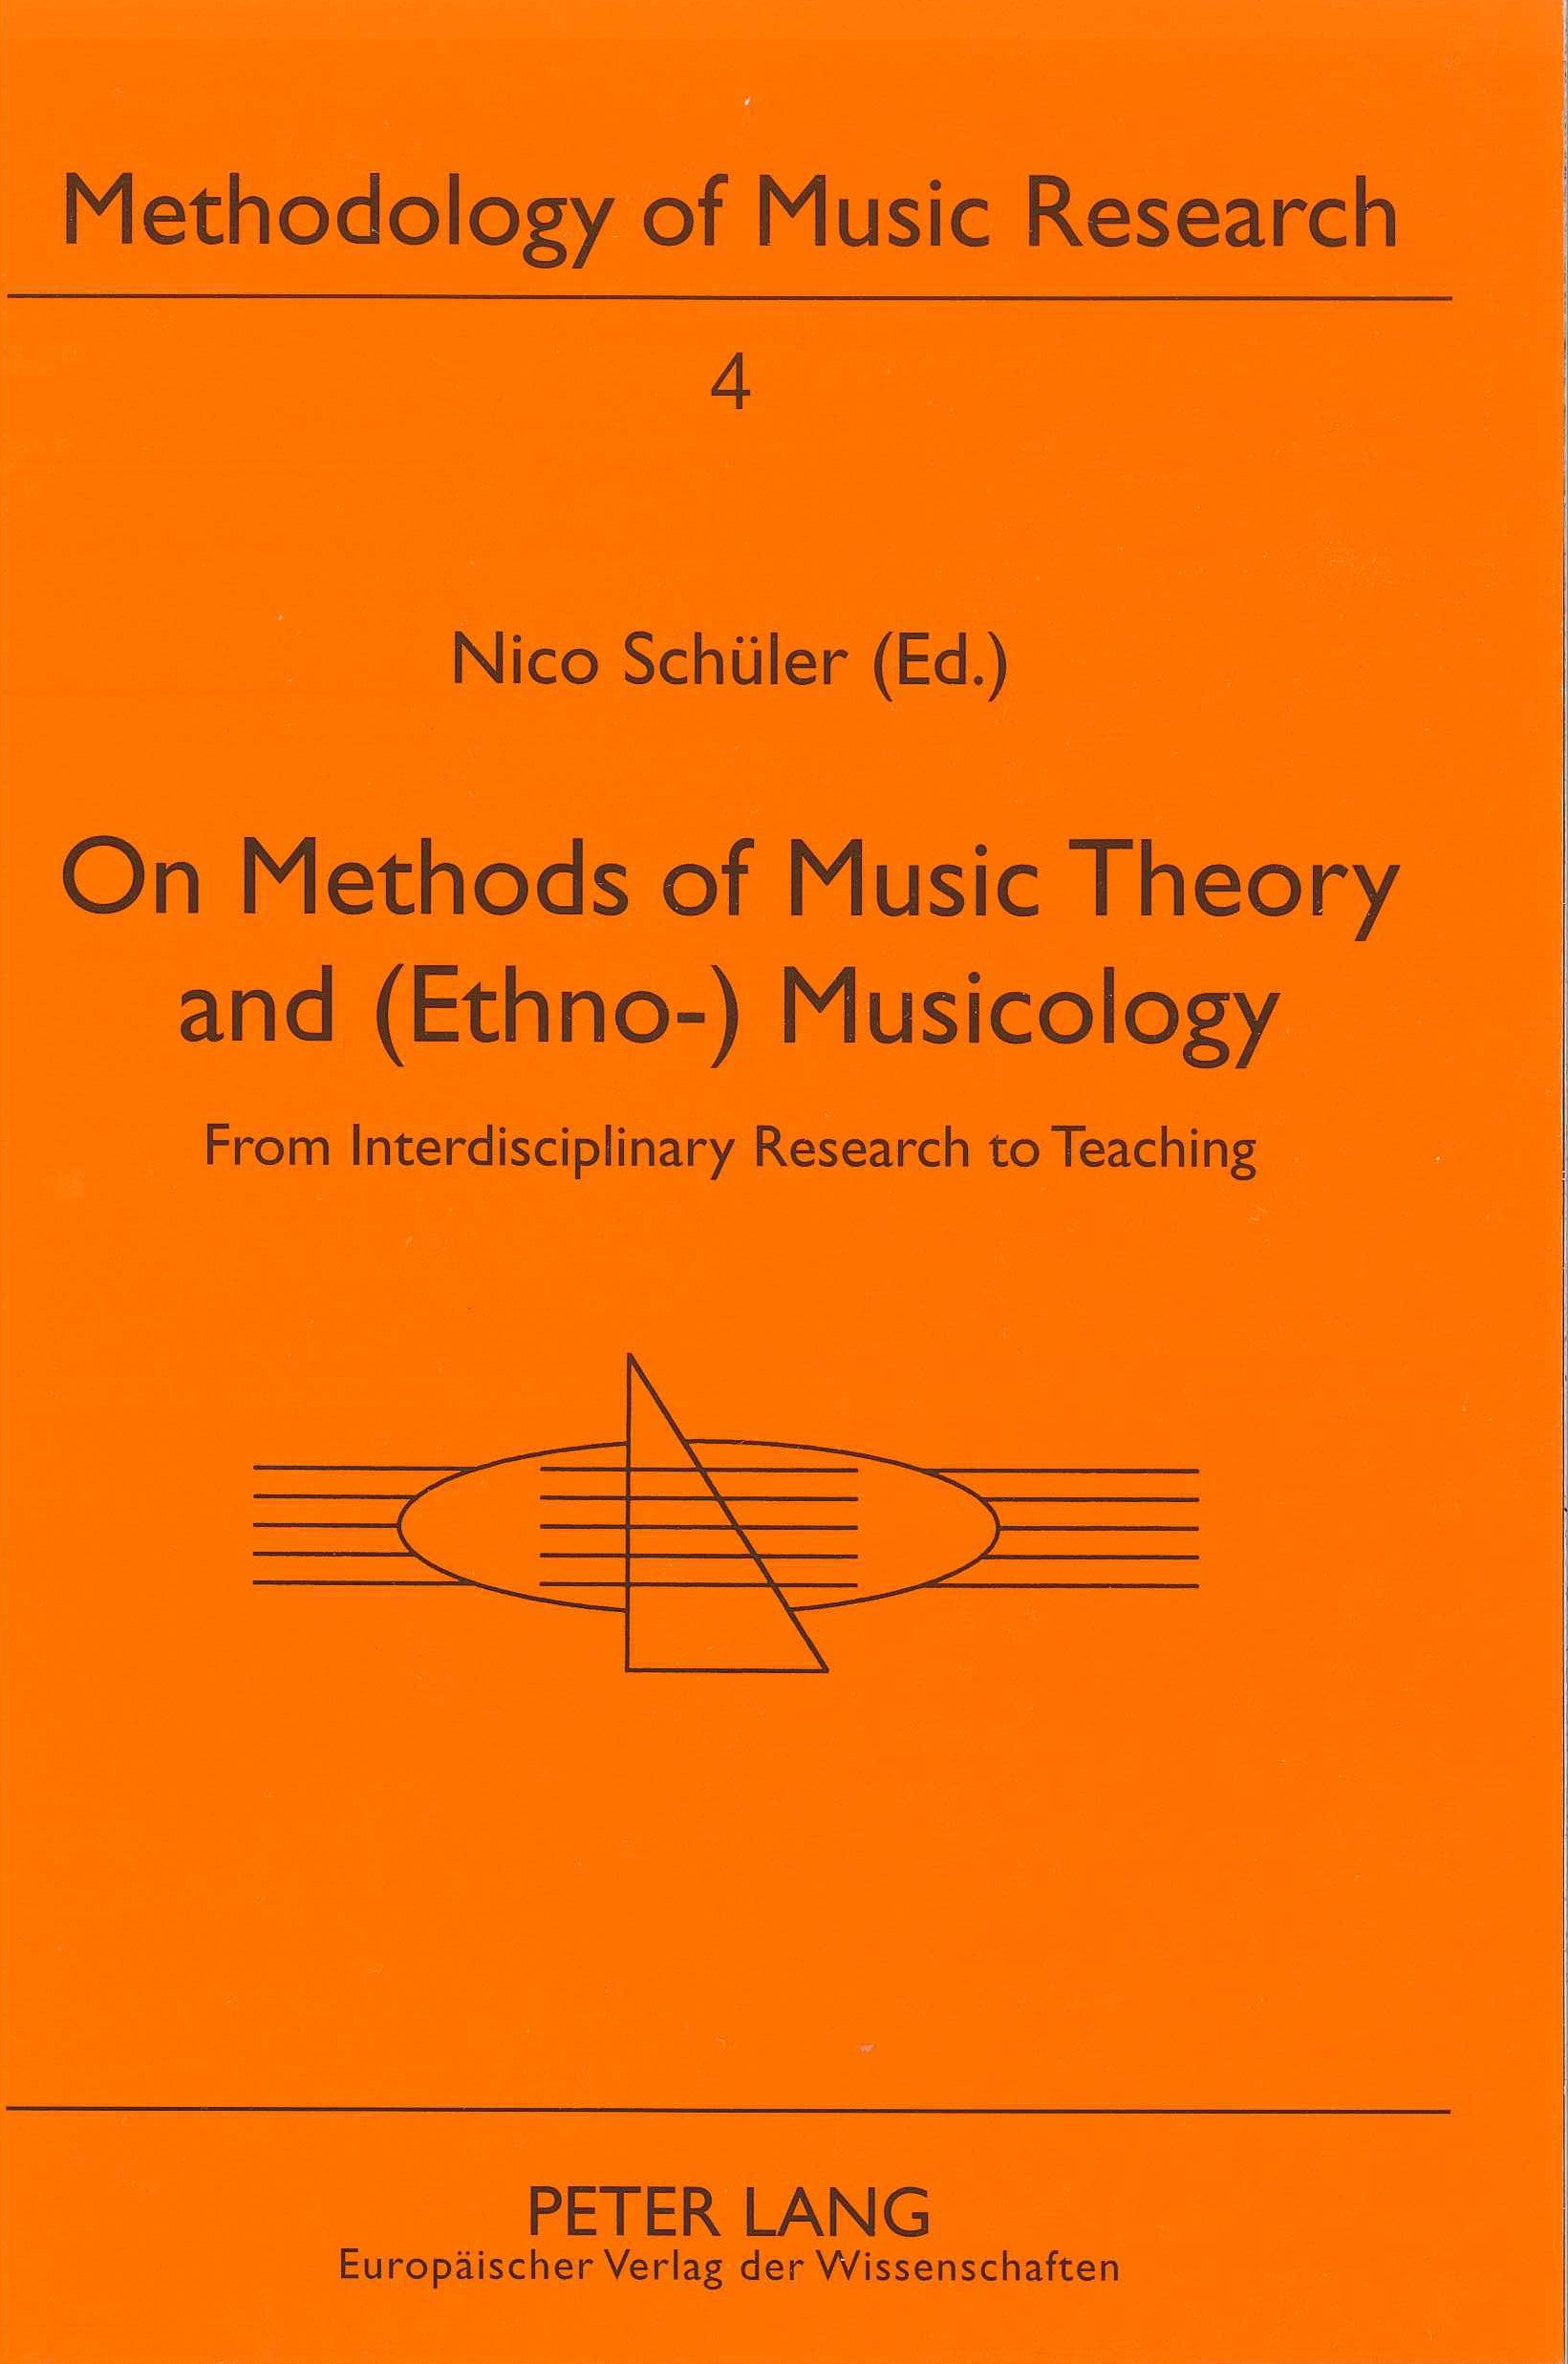 Download On Methods of Music Theory and (Ethno-) Musicology: From Interdisciplinary Research to Teaching (Methodology of Music Research, Methodologie Der Musikforshun) pdf epub